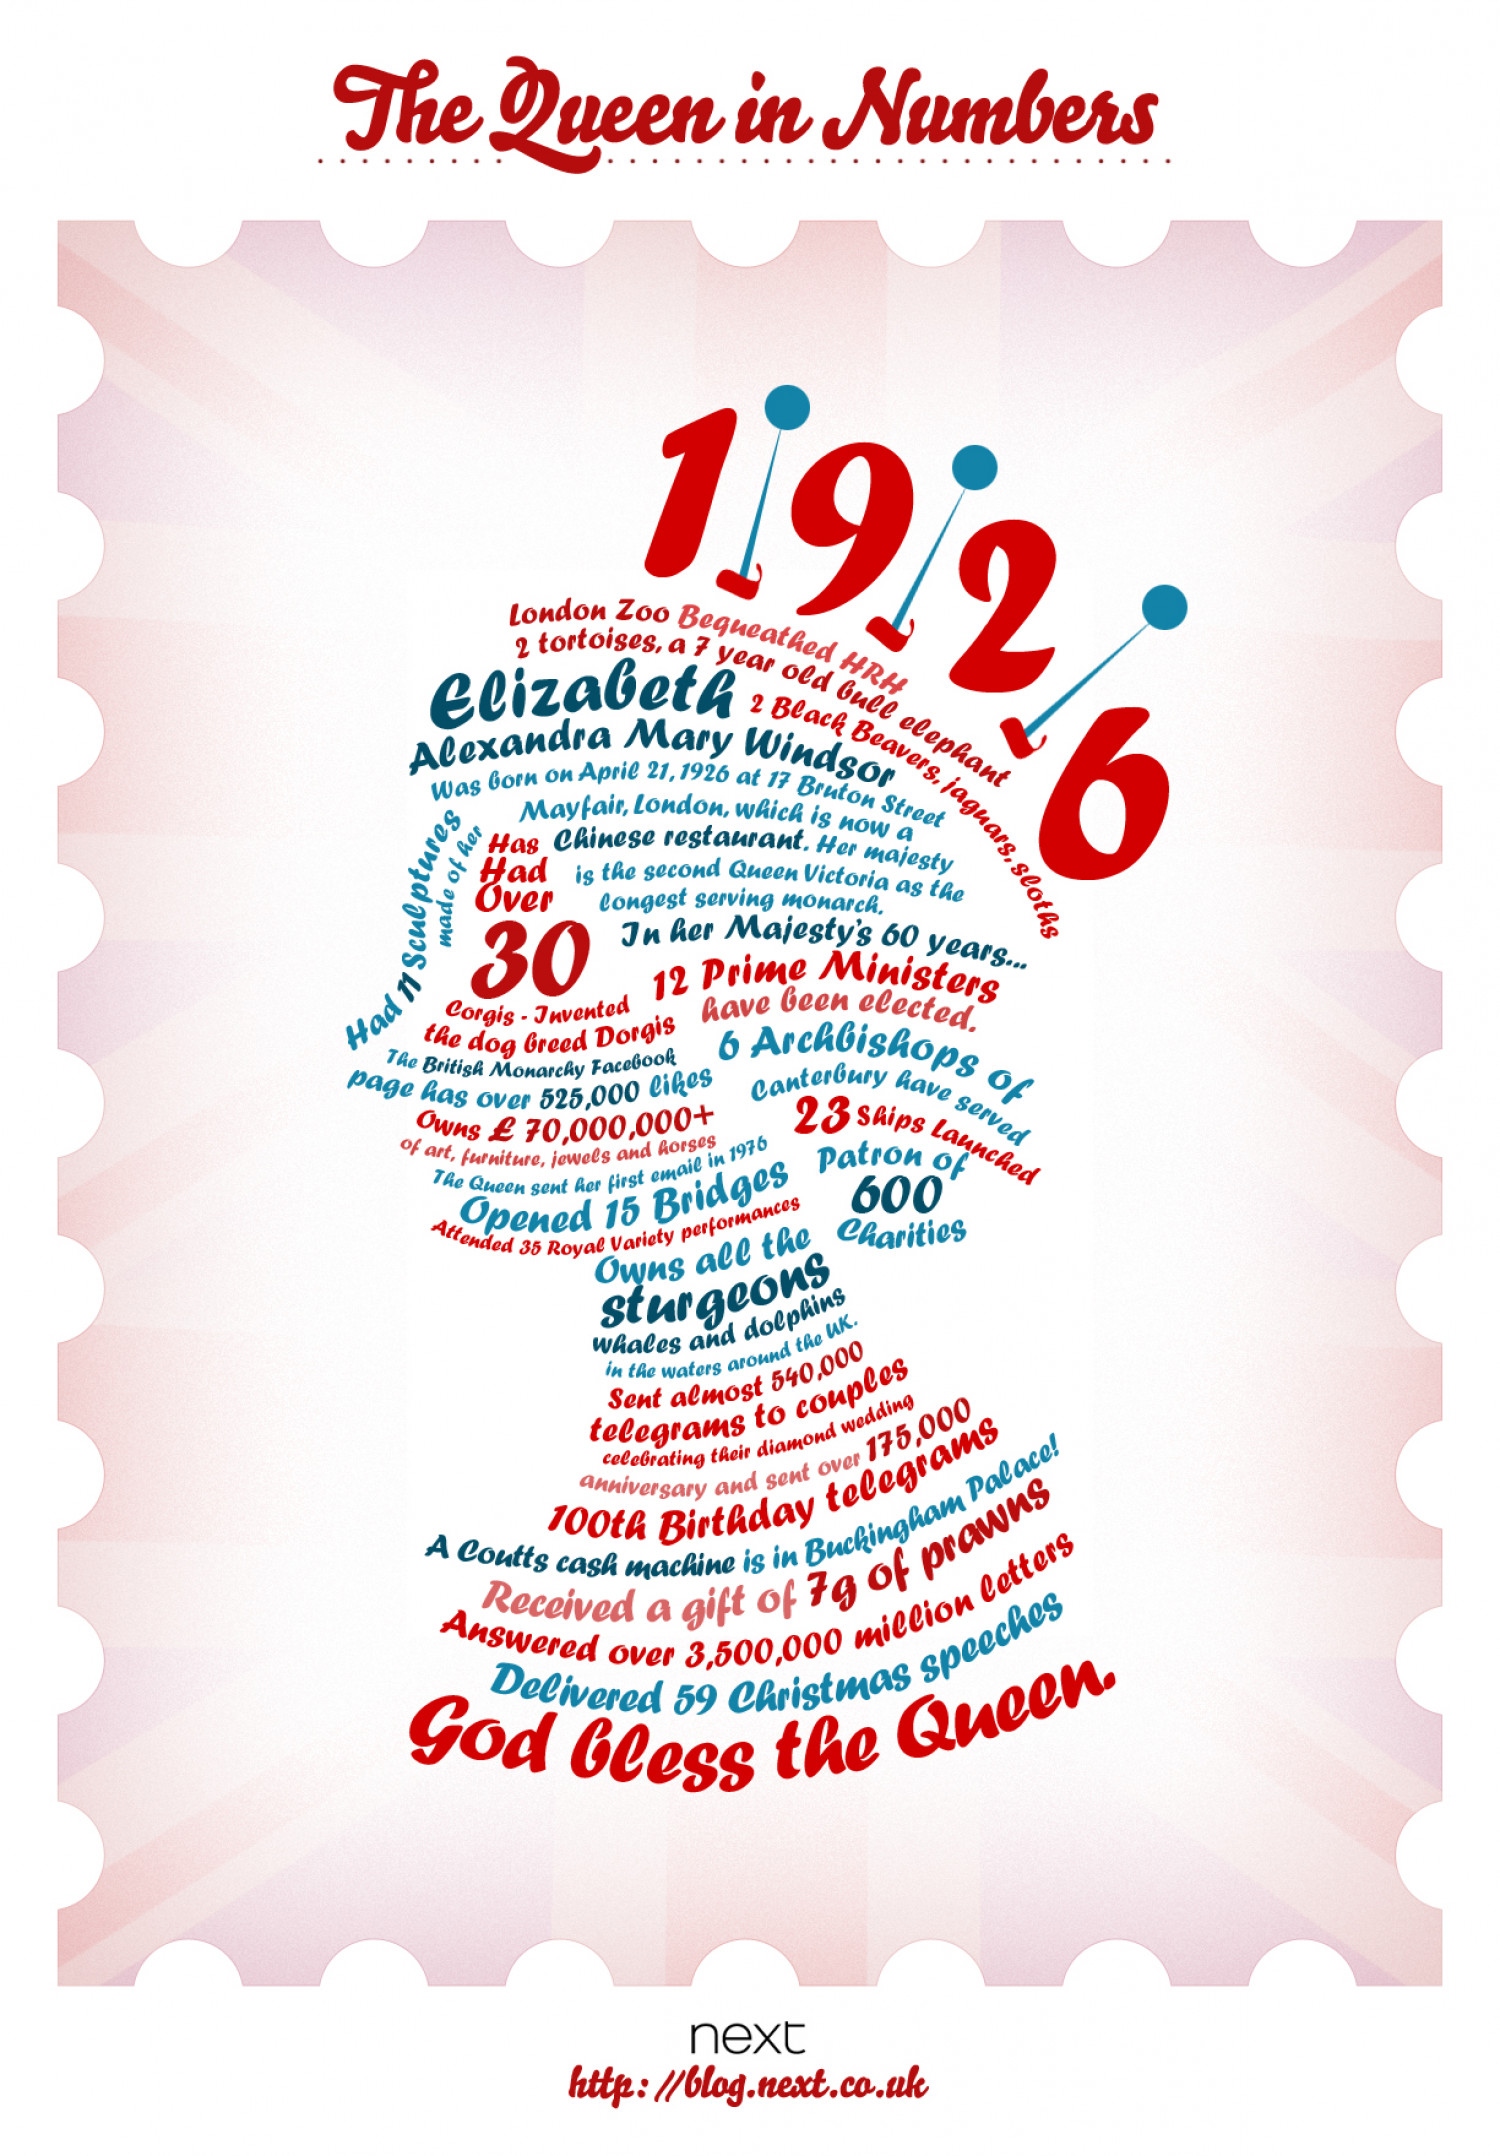 Next - The Queen in Numbers Infographic